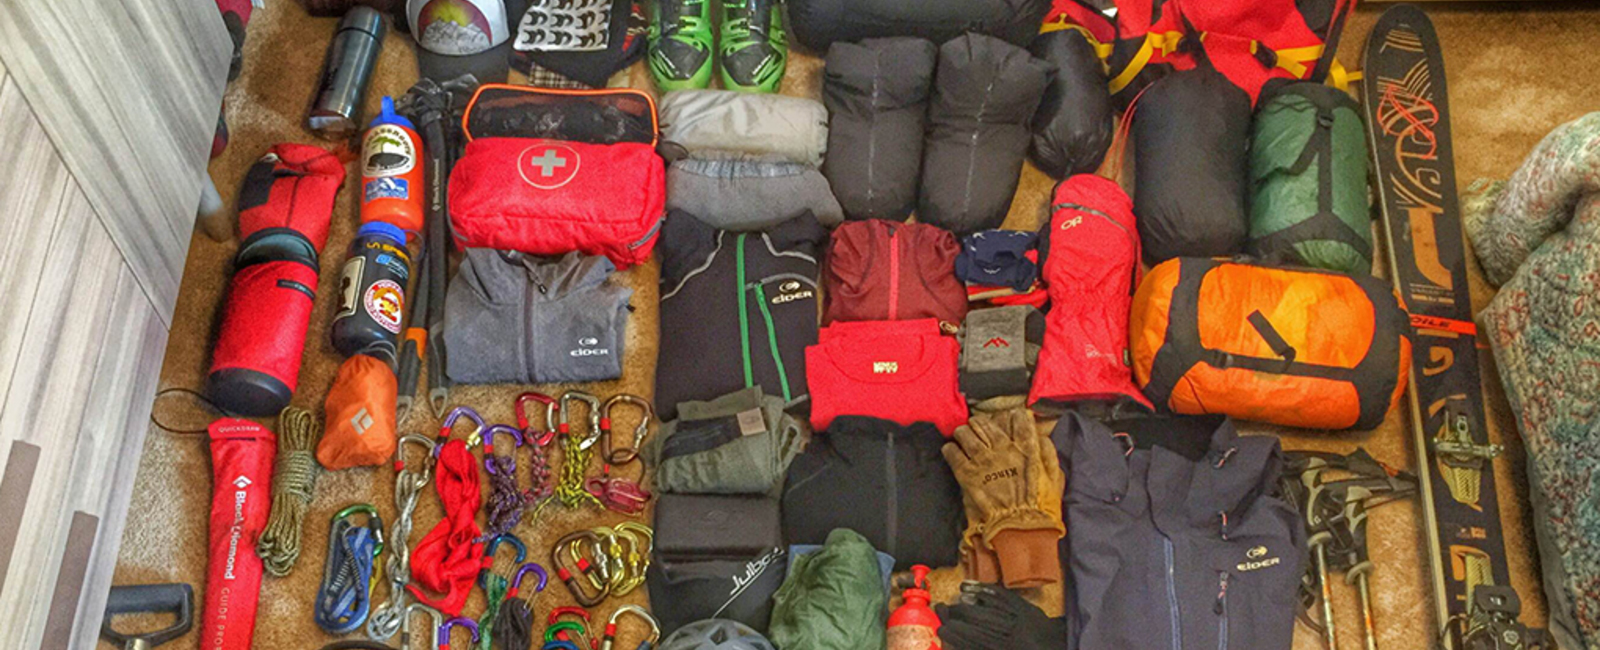 Experts' Tips on Packing for a Day of Backcountry Skiing